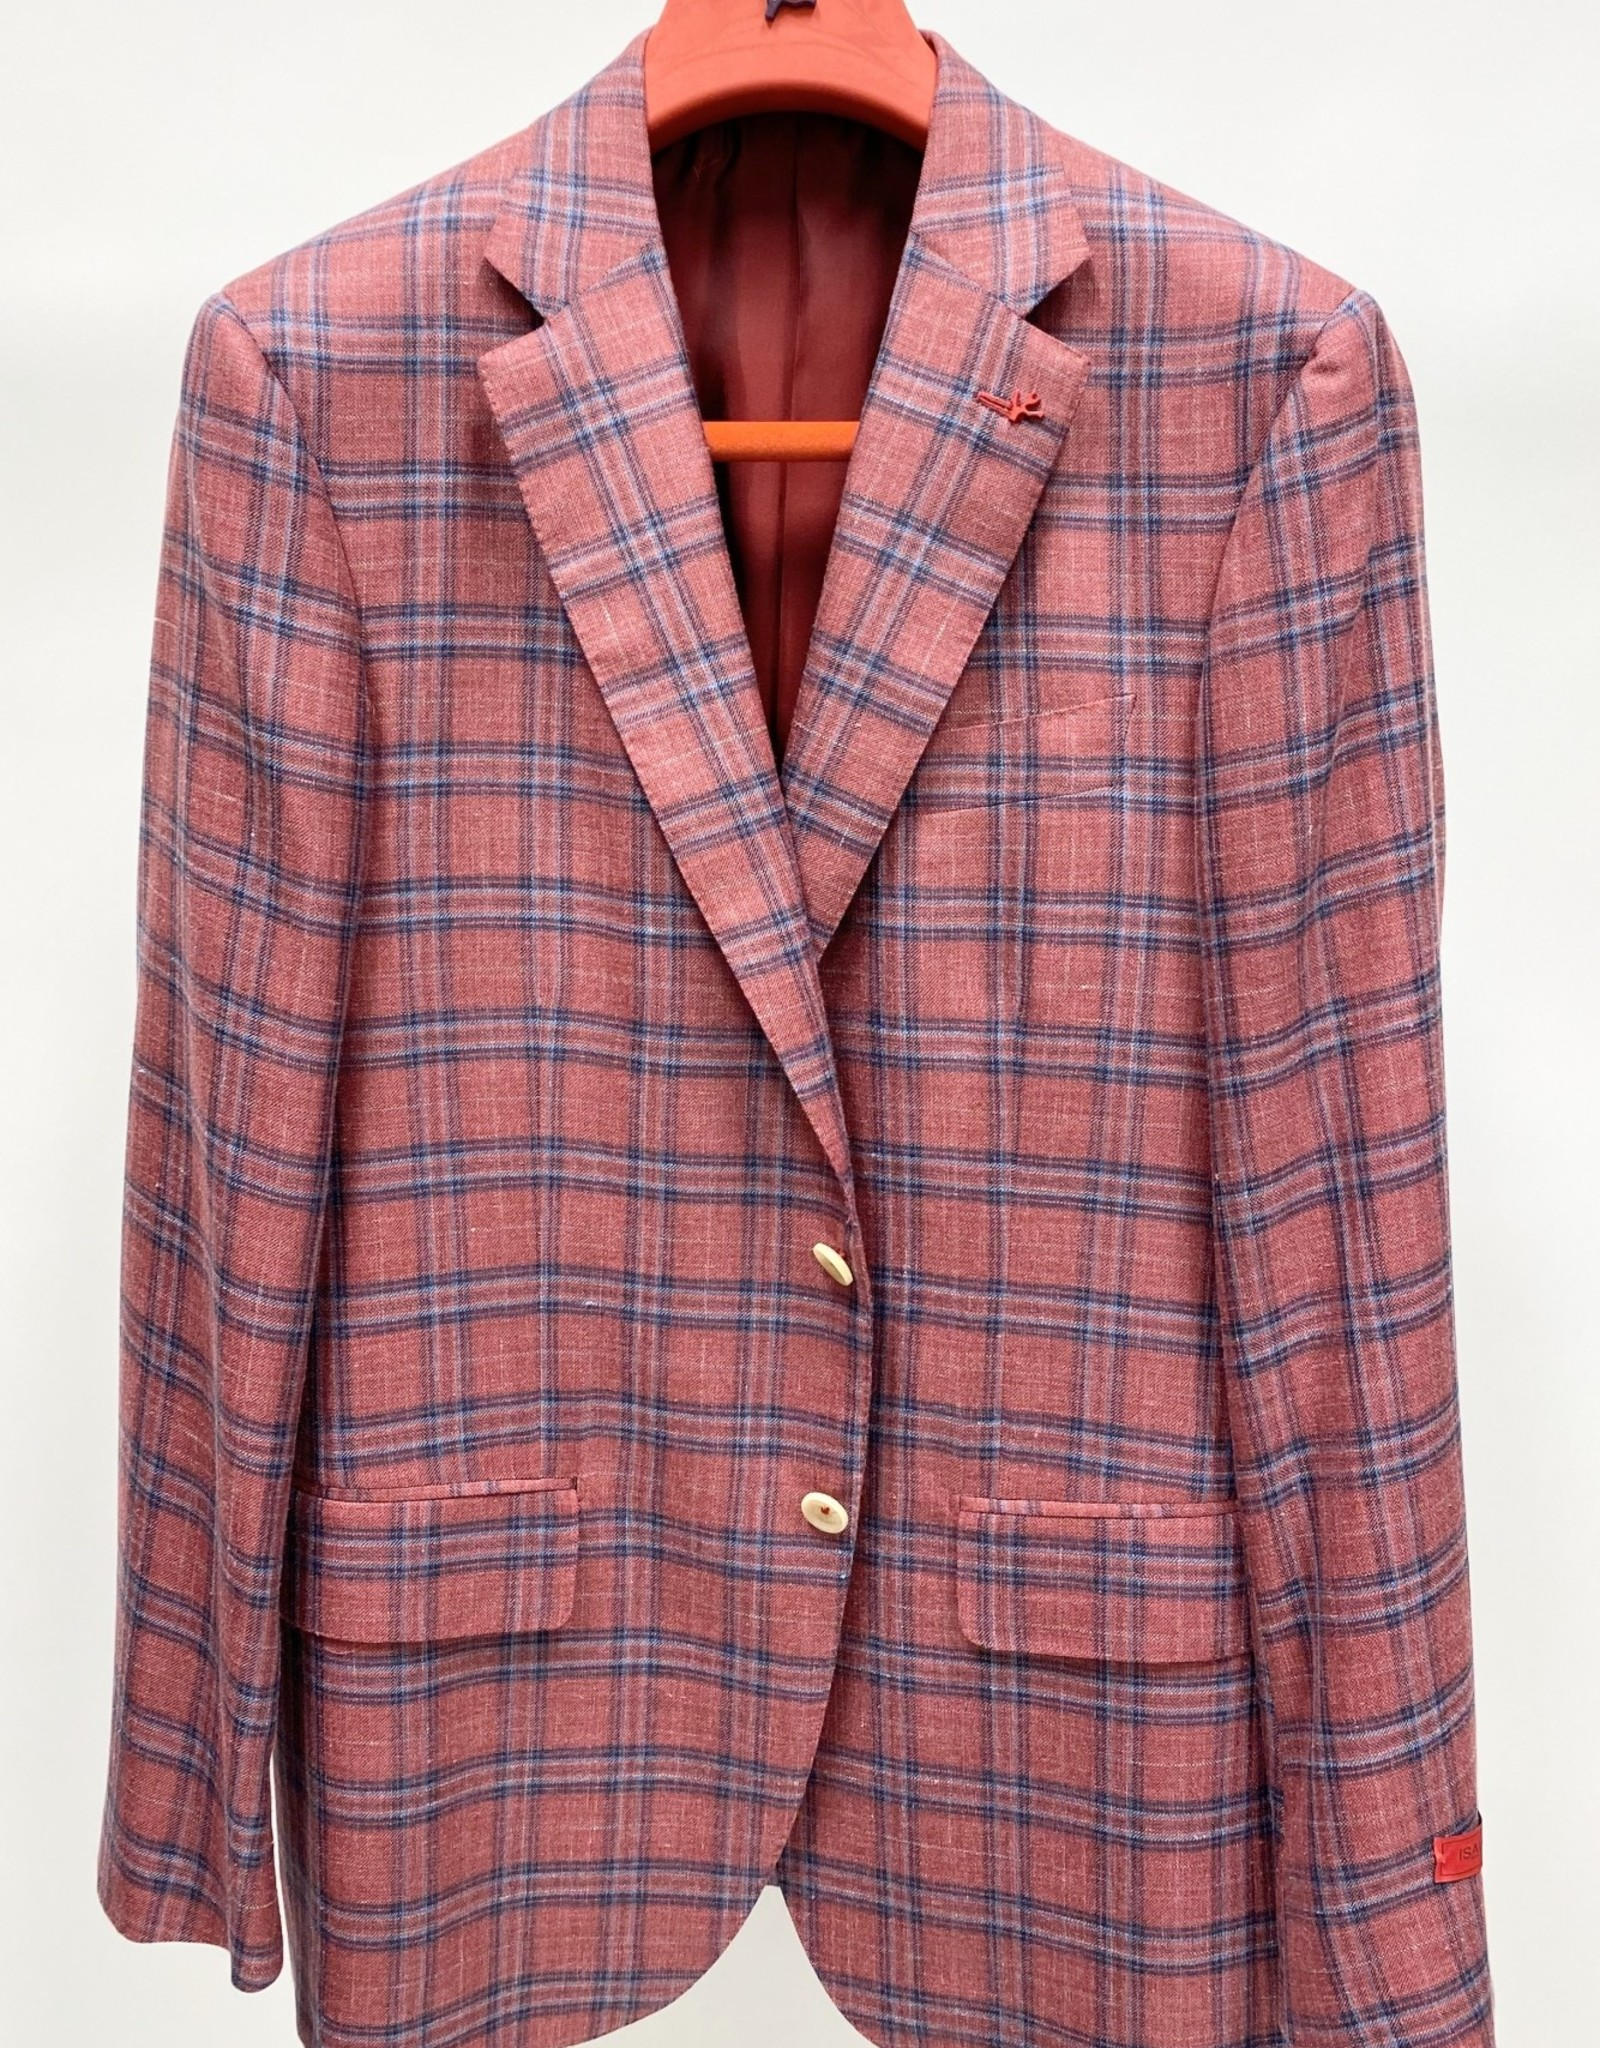 Isaia Plaid Sport Coat